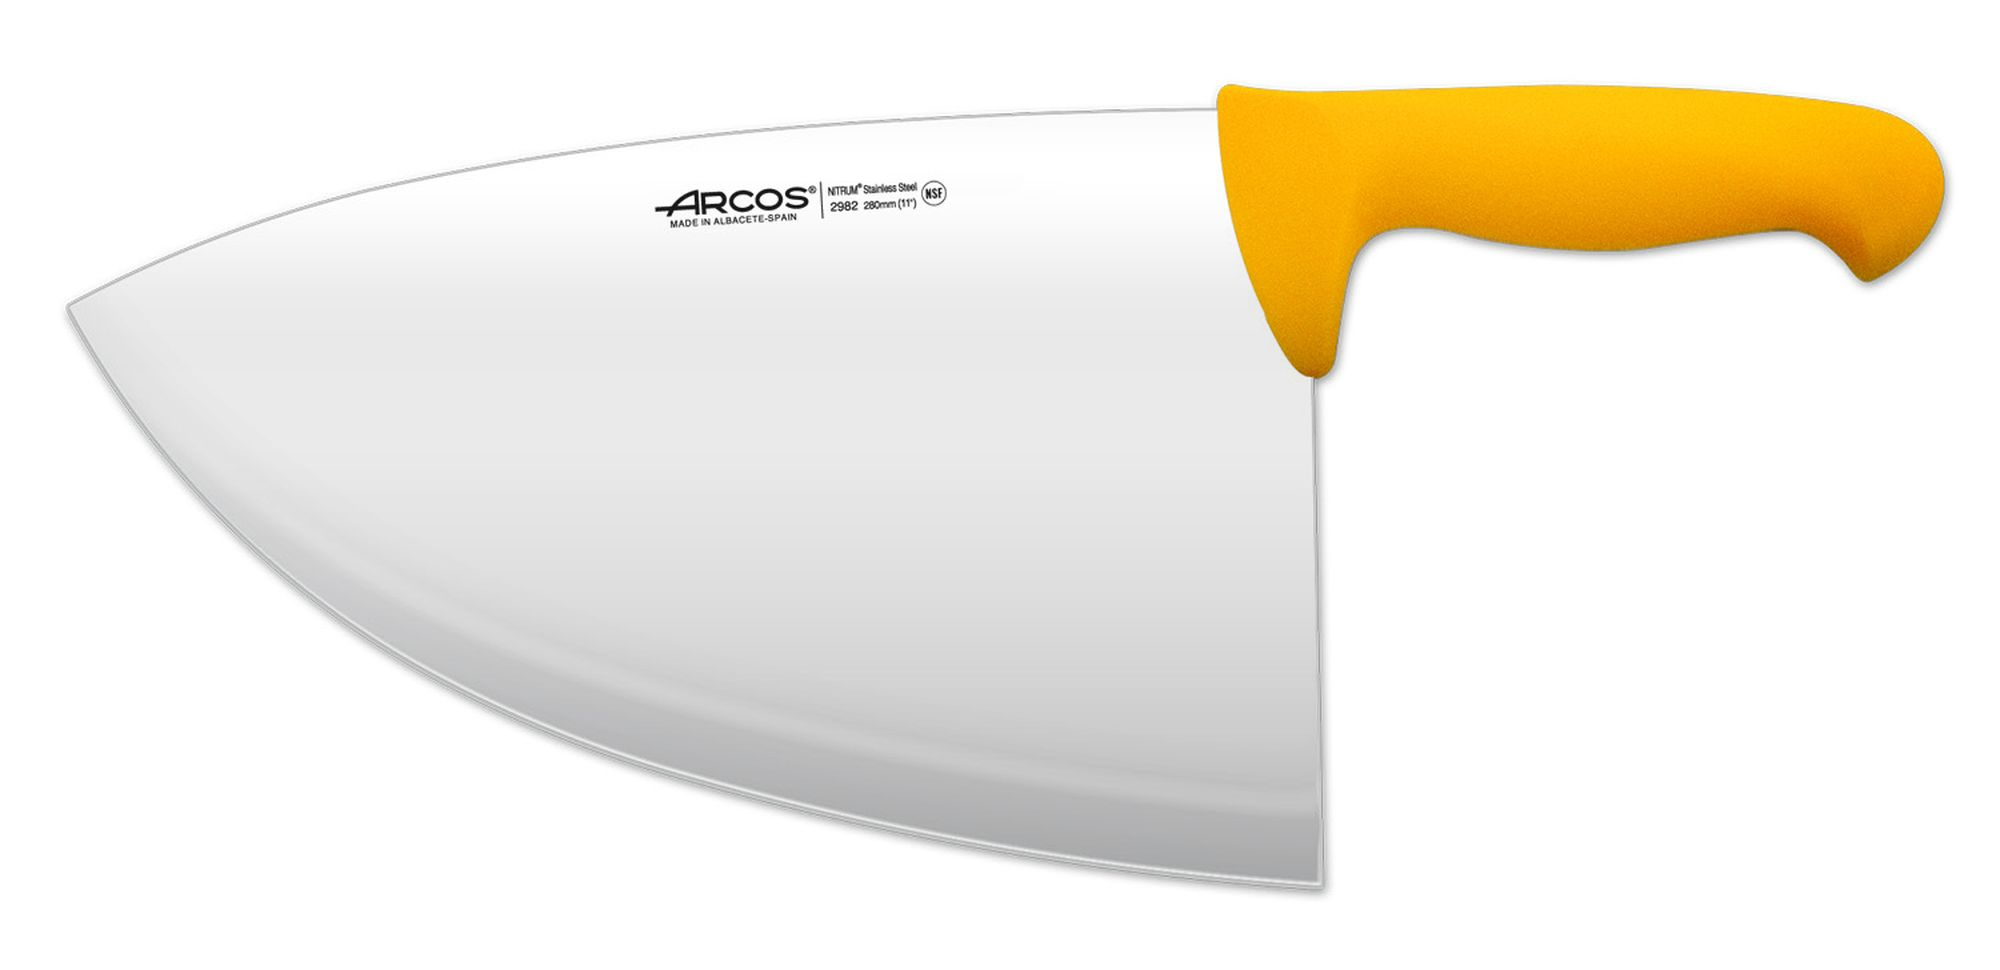 Cleaver Arcos ref.: 298200